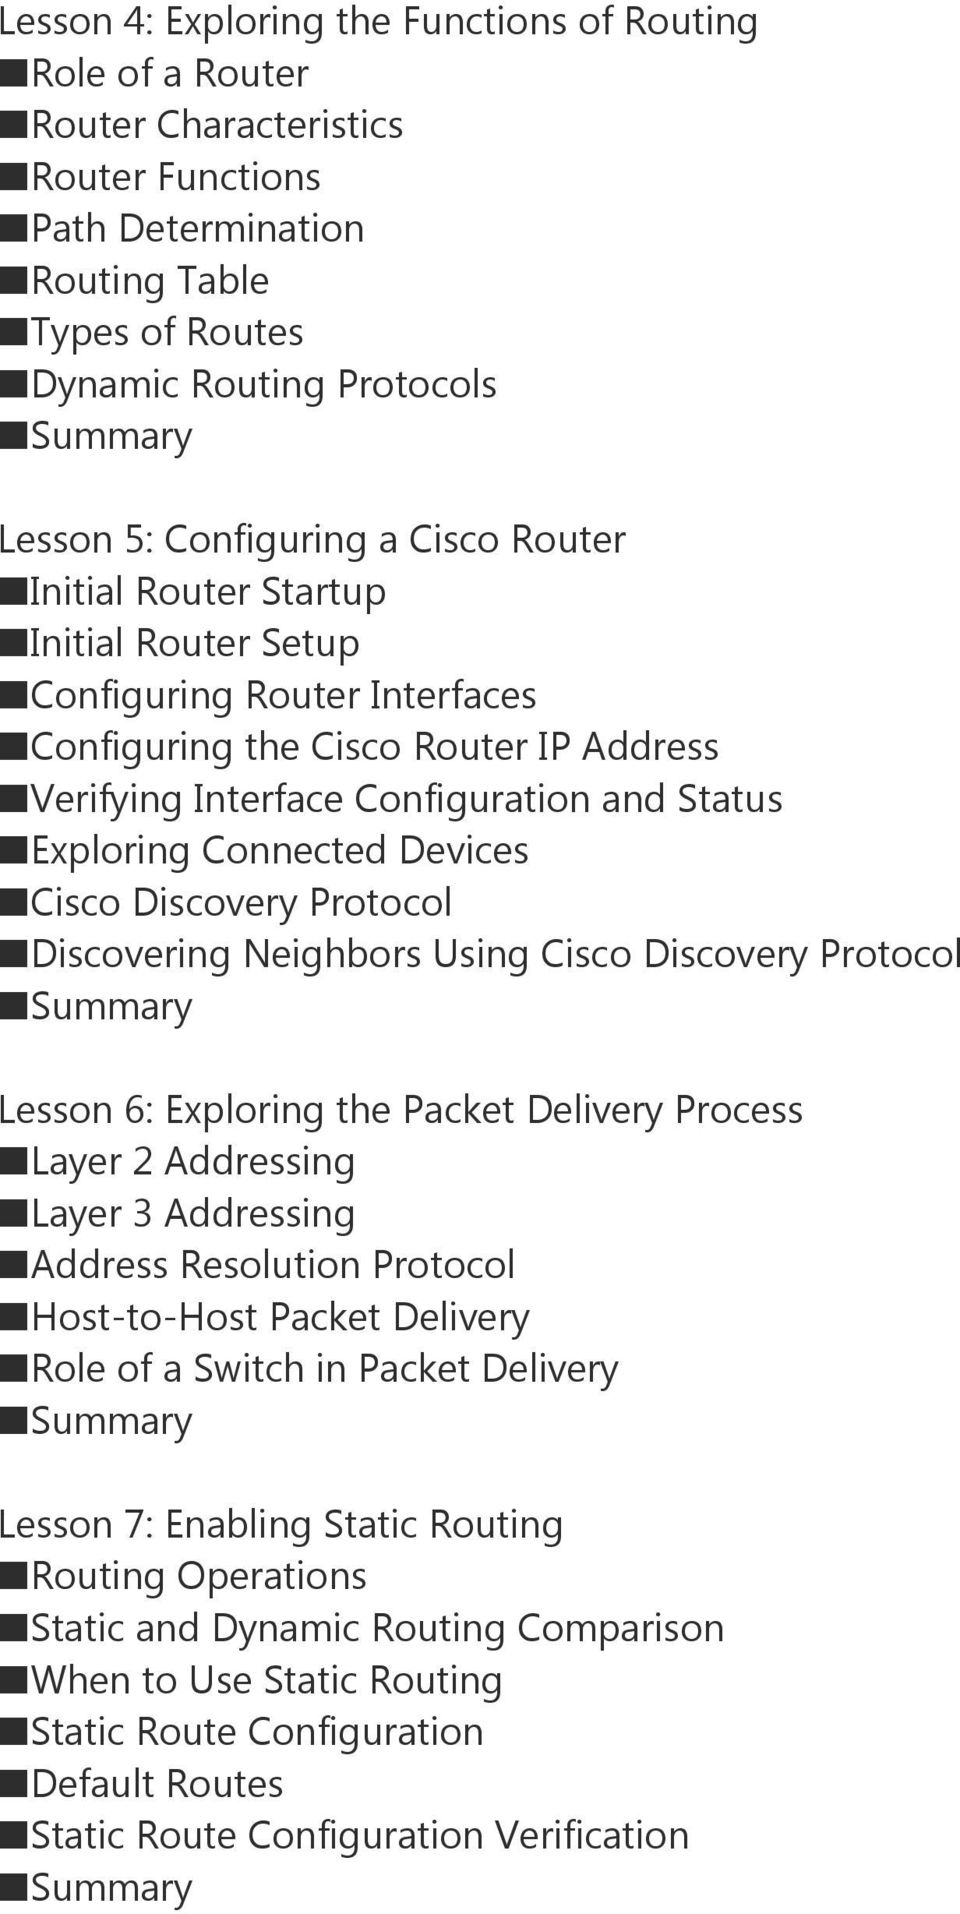 Devices Cisco Discovery Protocol Discovering Neighbors Using Cisco Discovery Protocol Lesson 6: Exploring the Packet Delivery Process Layer 2 Addressing Layer 3 Addressing Address Resolution Protocol